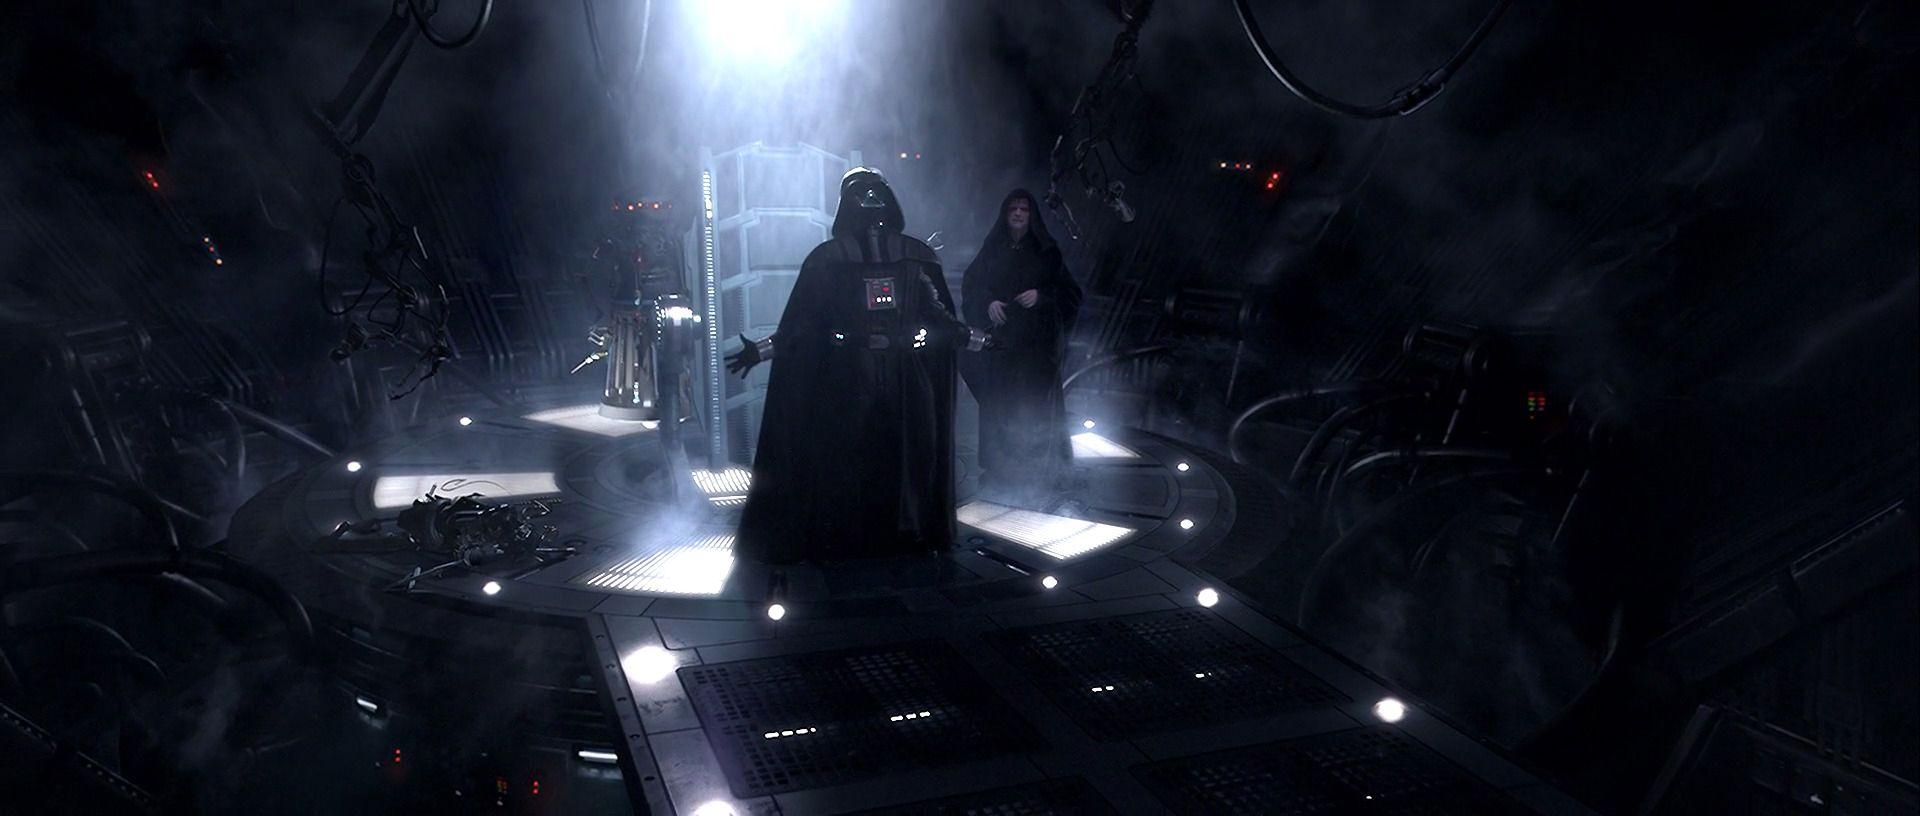 Star Wars Episode III: Revenge of the Sith - Darth Vader with Emperor Palpatine behind him